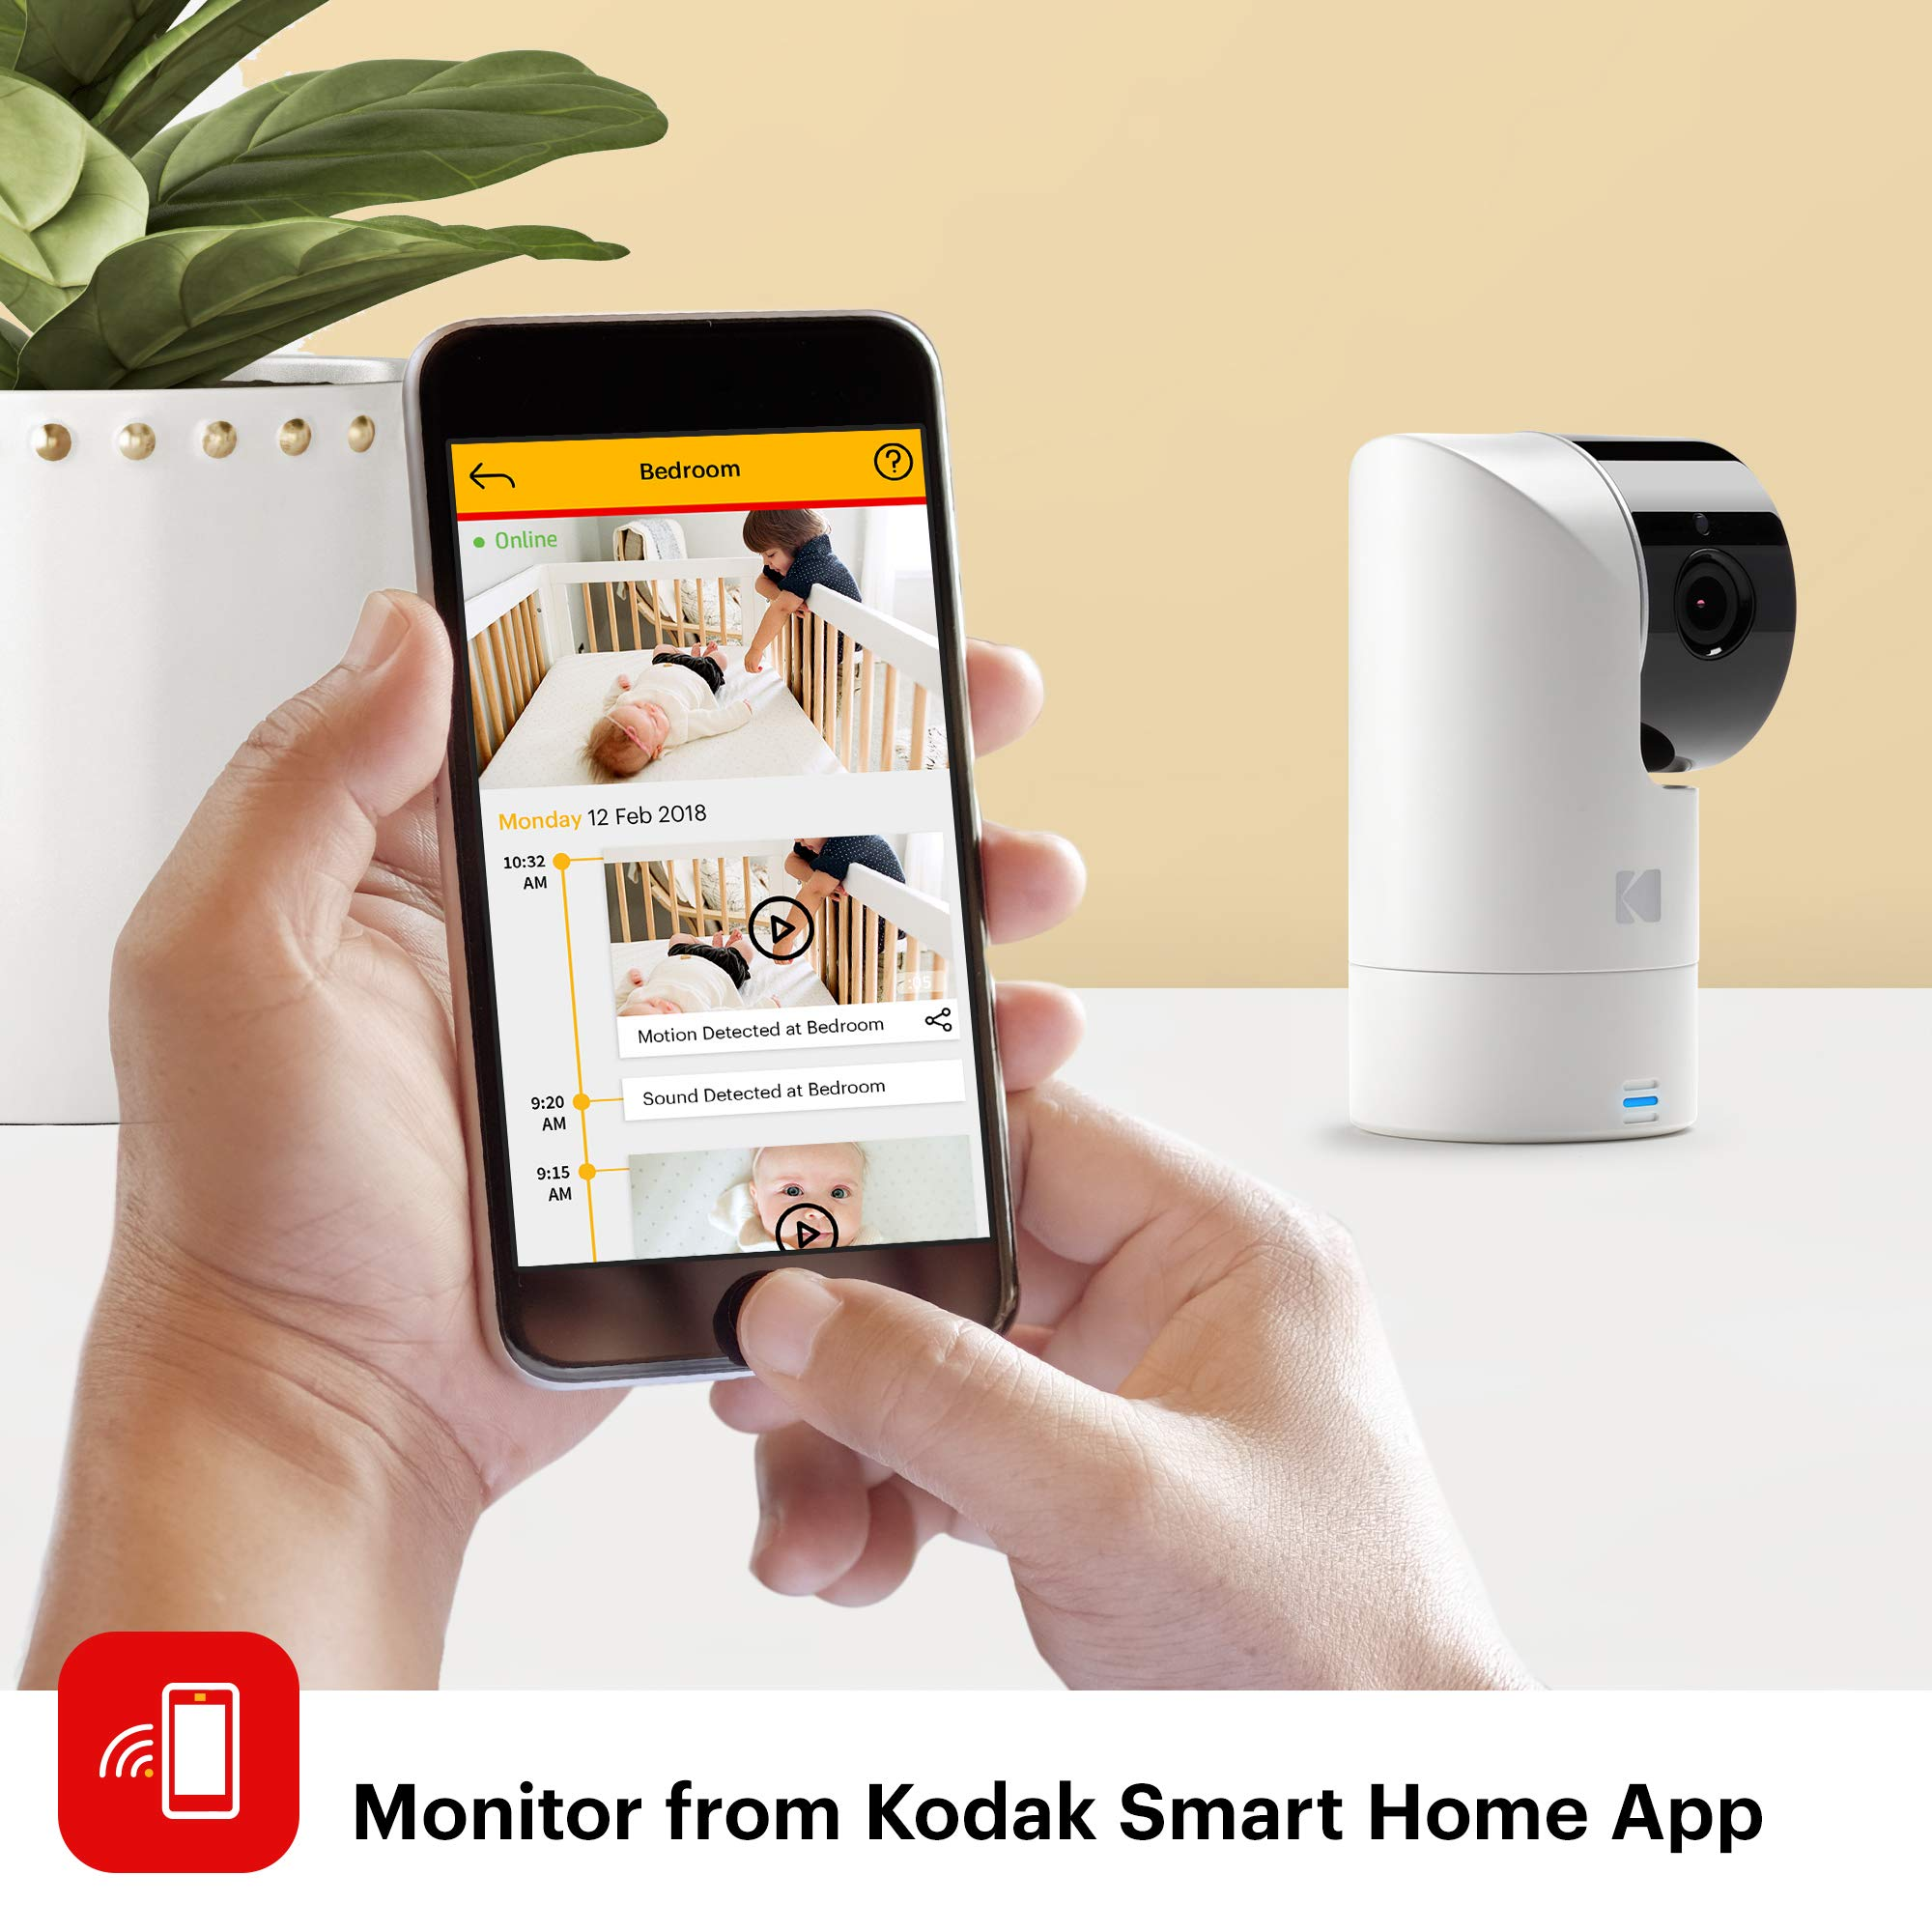 KODAK Cherish C525 Video Baby Monitor + C125 Additional Camera - with Mobile App - 5'' HD Screen - Hi-res Baby Camera with Remote Tilt, Pan and Zoom Two-Way Audio, Night-Vision, Long Range by Kodak (Image #5)